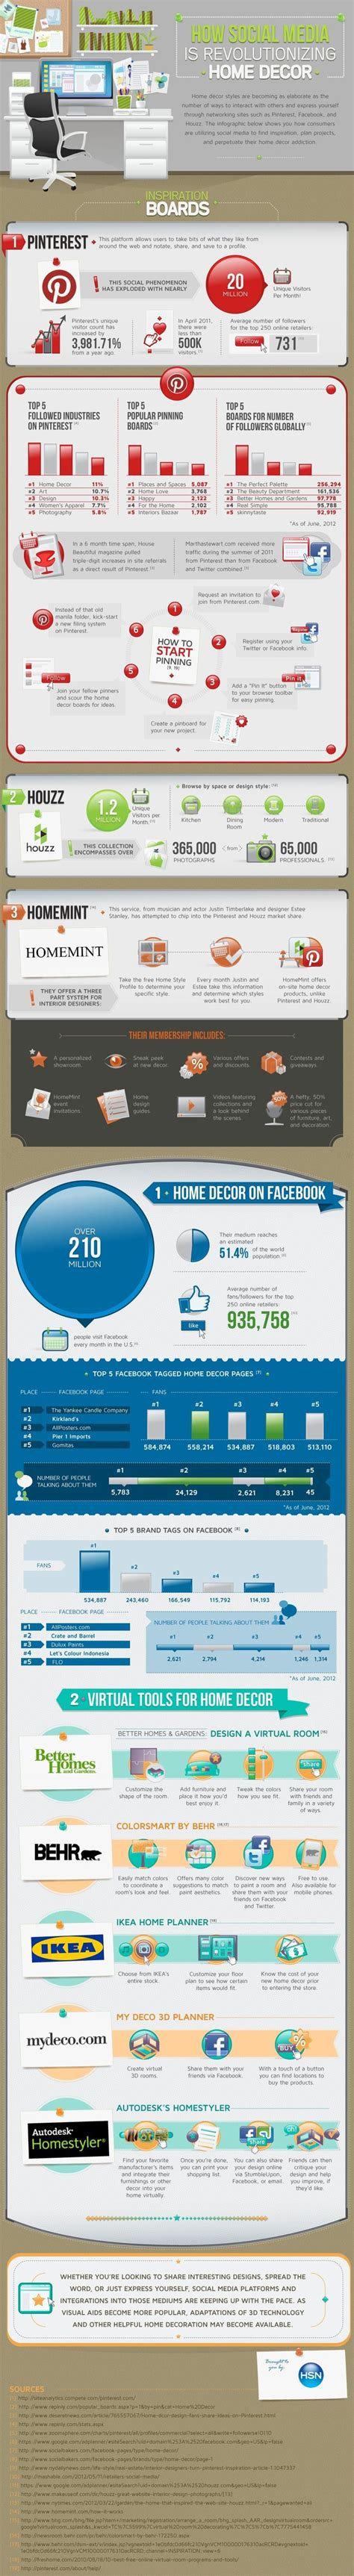 home decor infographic social media has revolutionized home decorating infographic